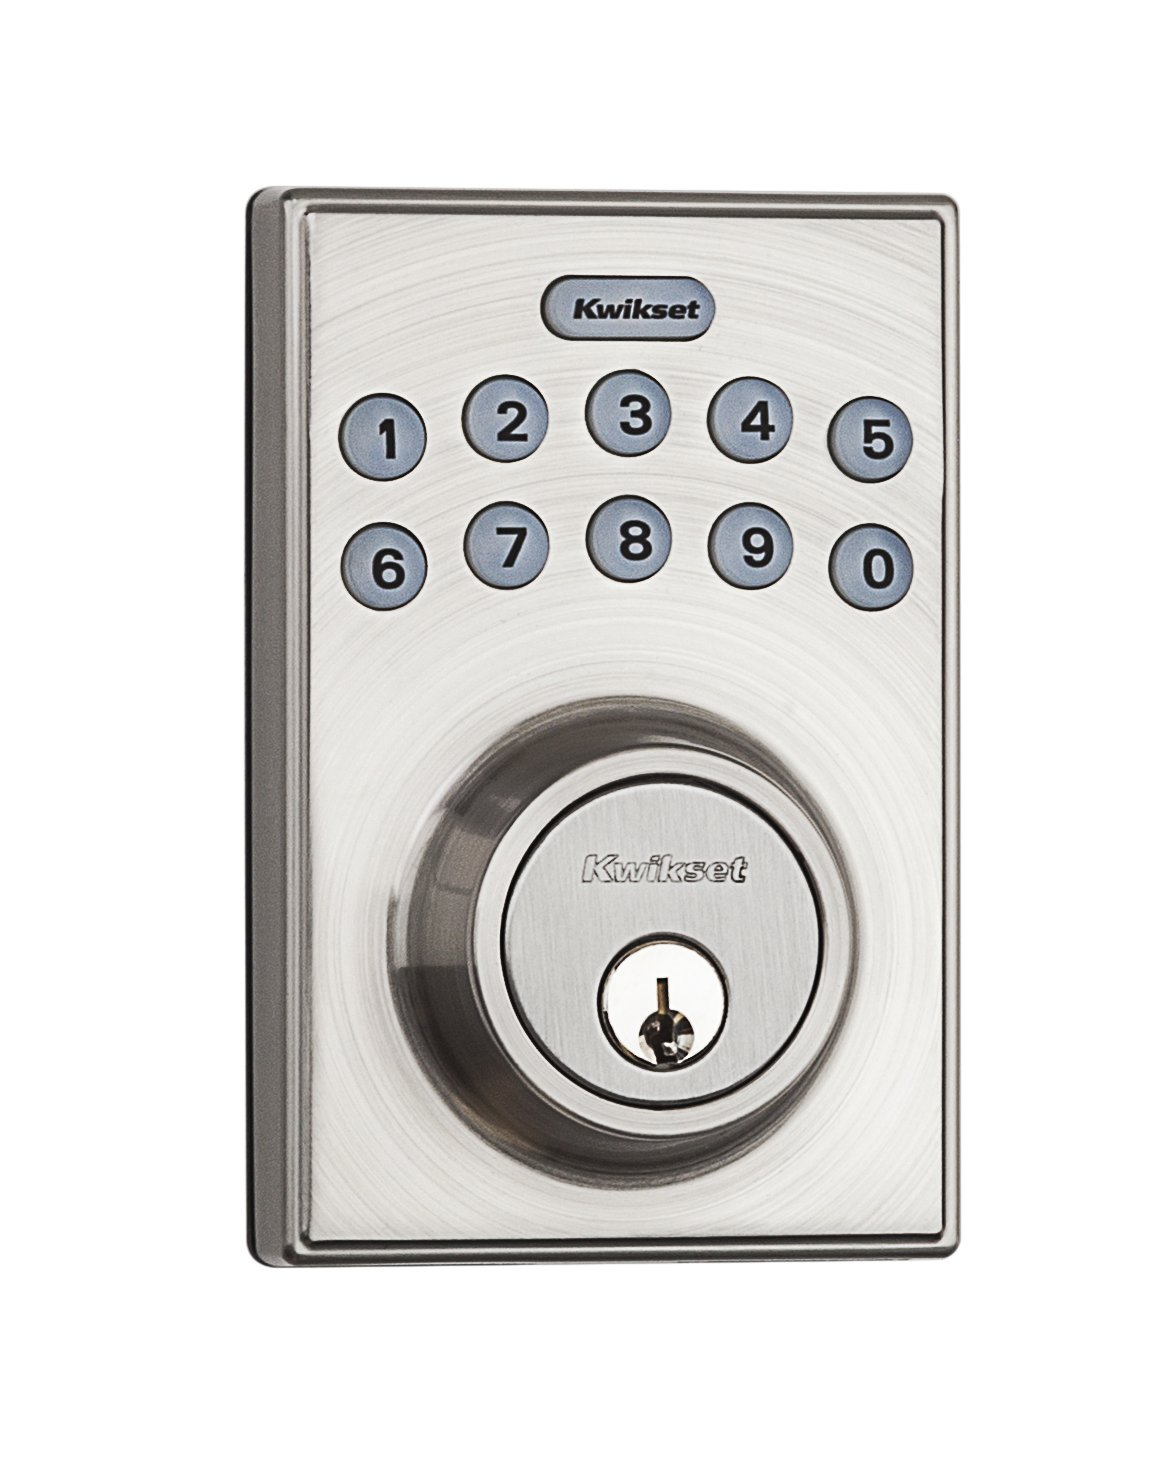 Kwikset 92640-001 Contemporary Electronic Keypad Single Cylinder Deadbolt with 1-Touch Motorized Locking  Satin Nickel Kwikset Corporation